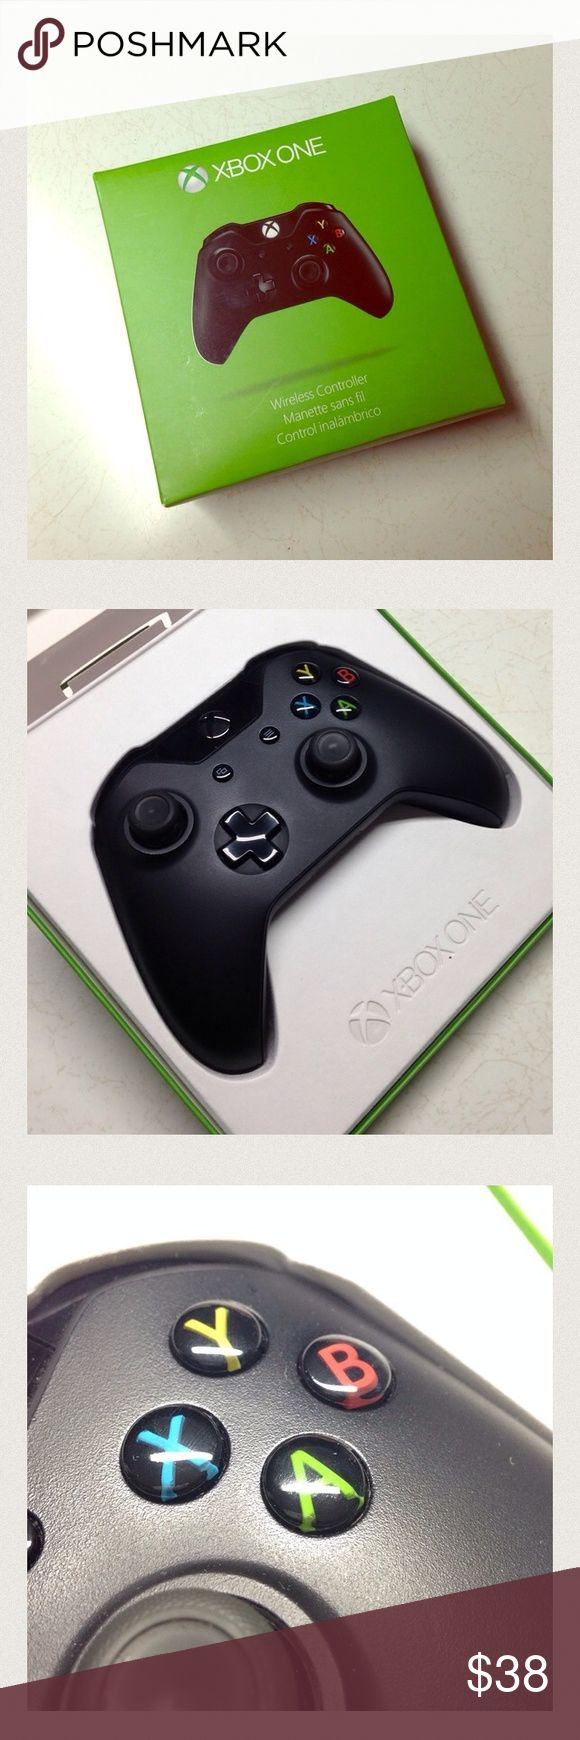 Xbox One Controller This Wireless Controller Has Been Played With Only For  A Month Sold